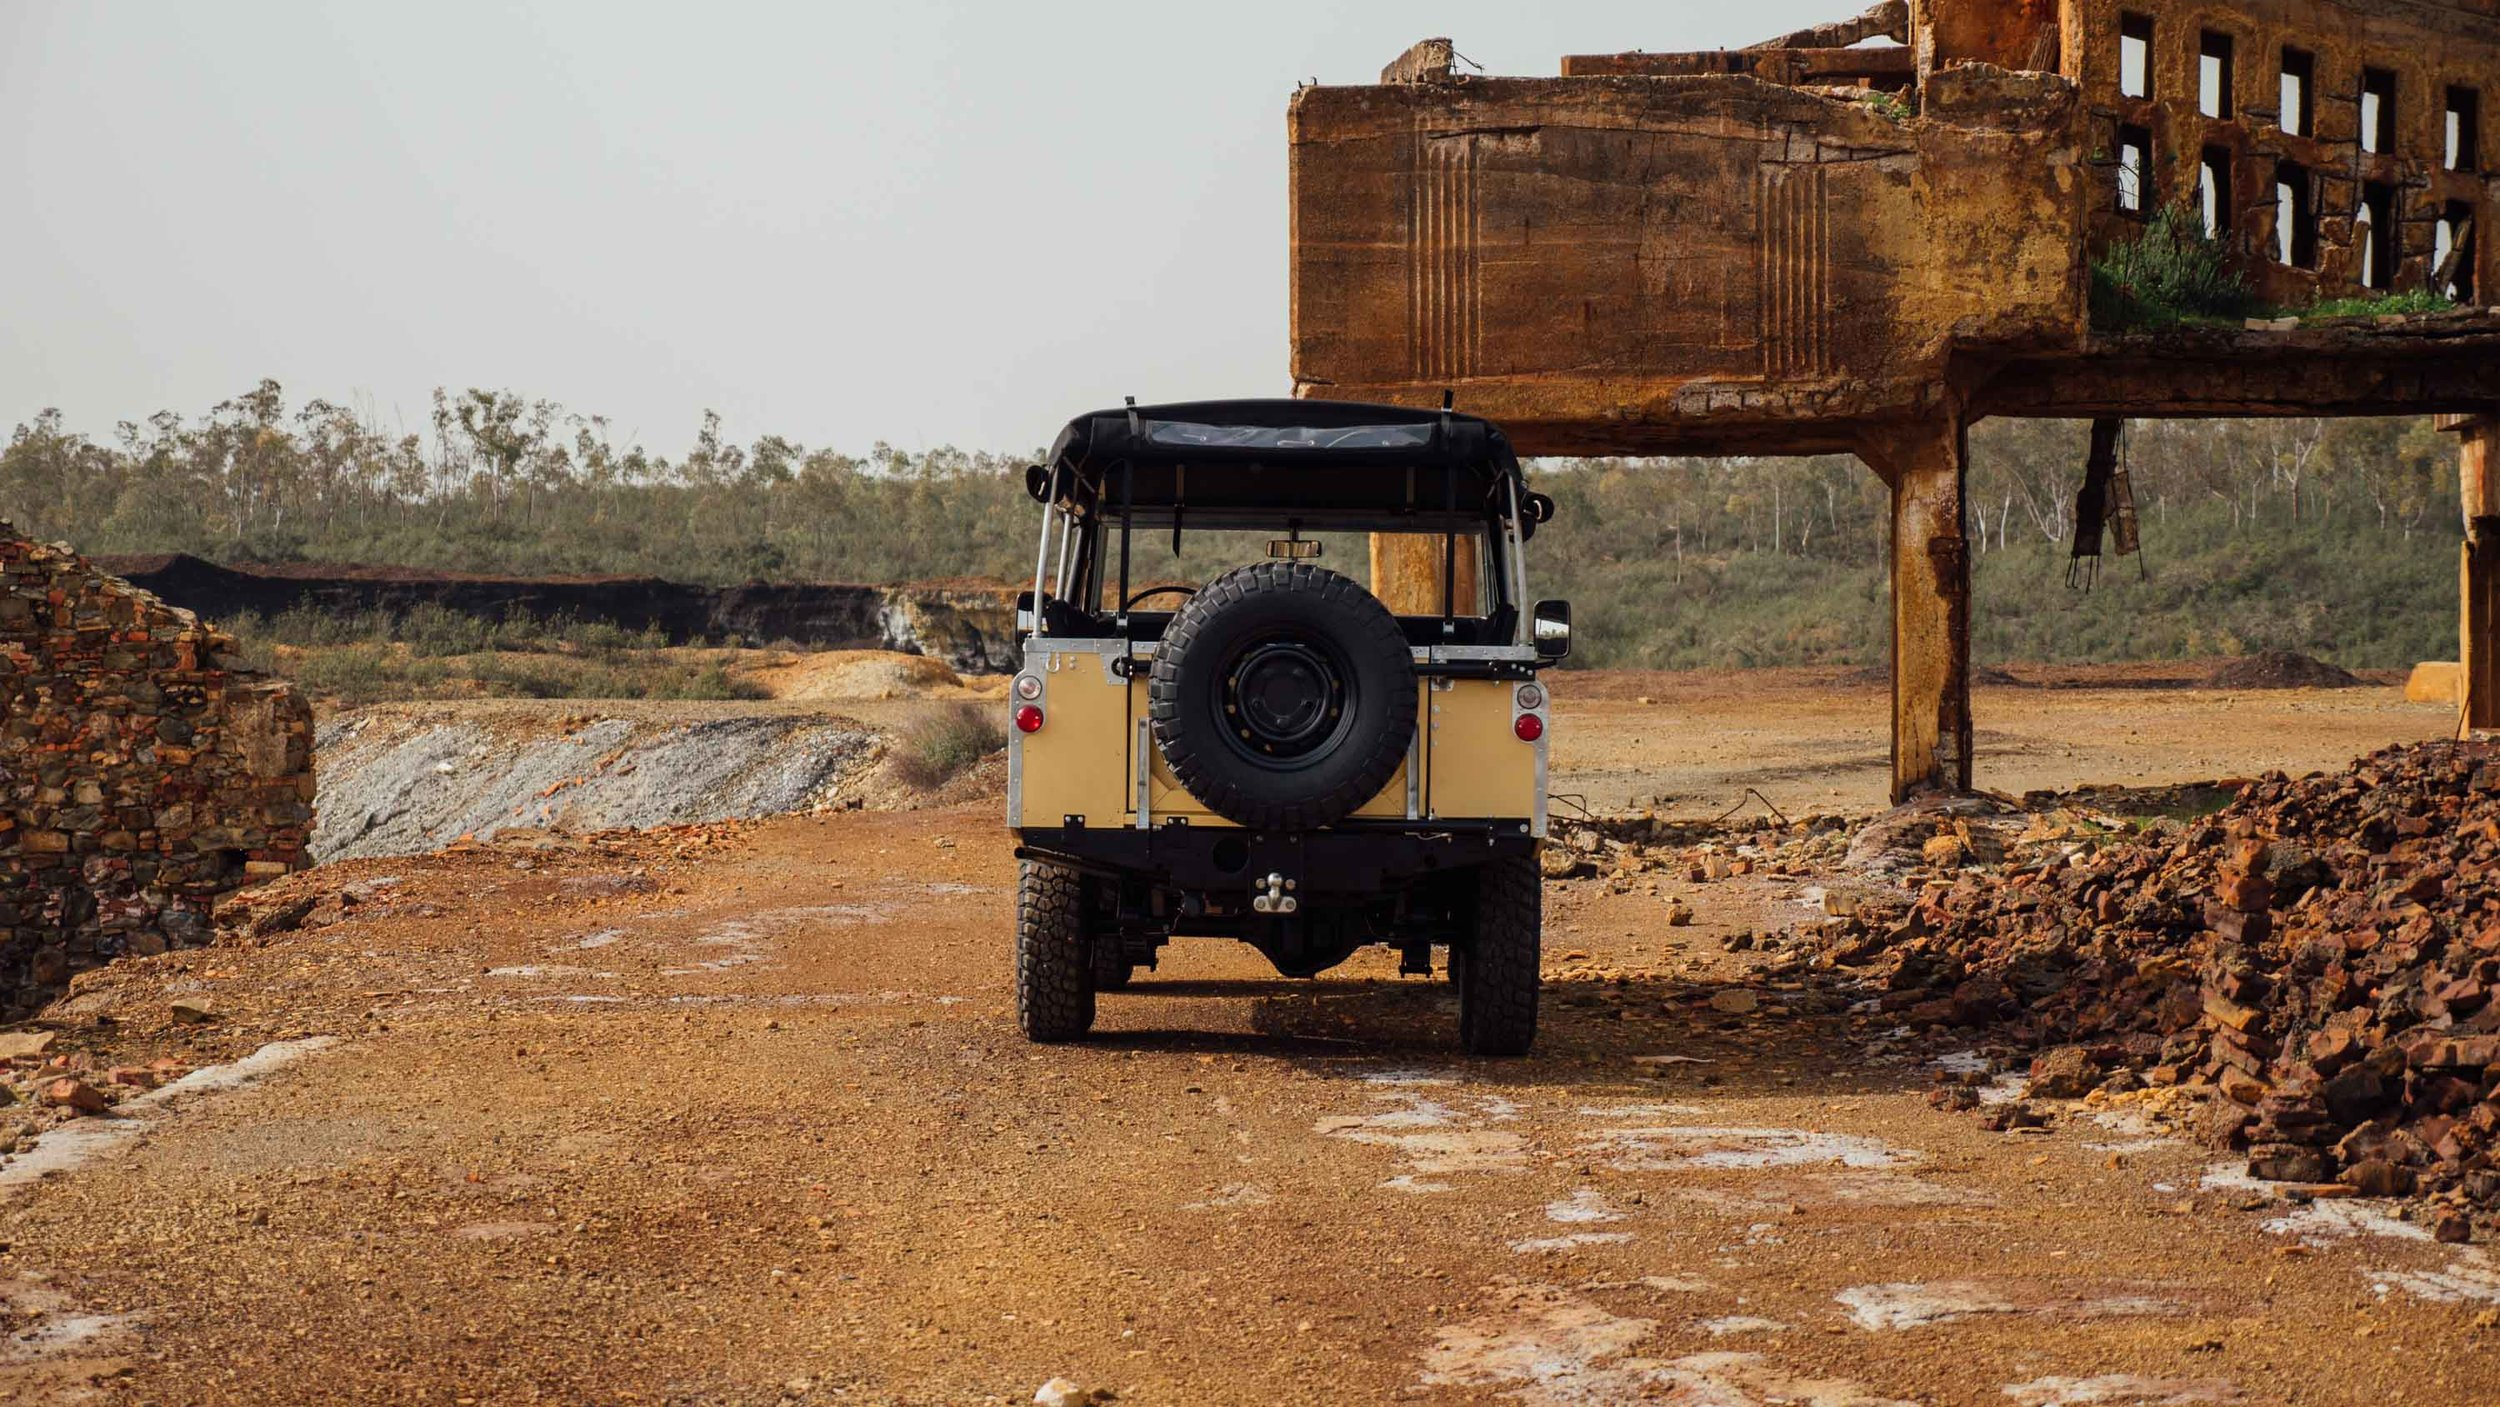 coolnvintage Land Rover S3 (166 of 207).jpg